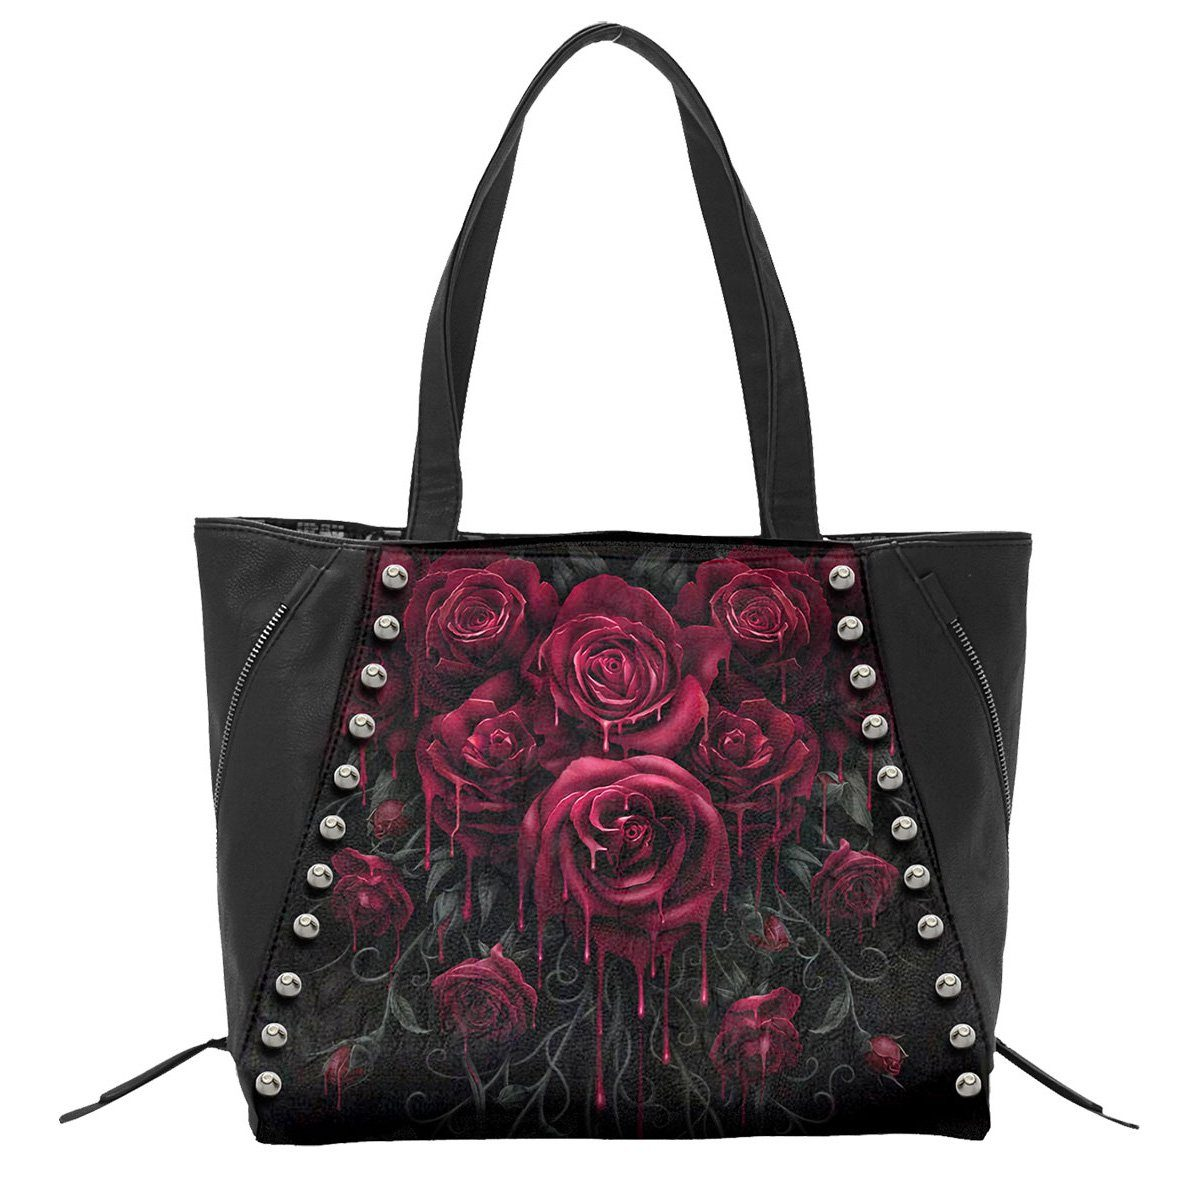 Blood Rose Leather Tote Bag - Rebels Depot